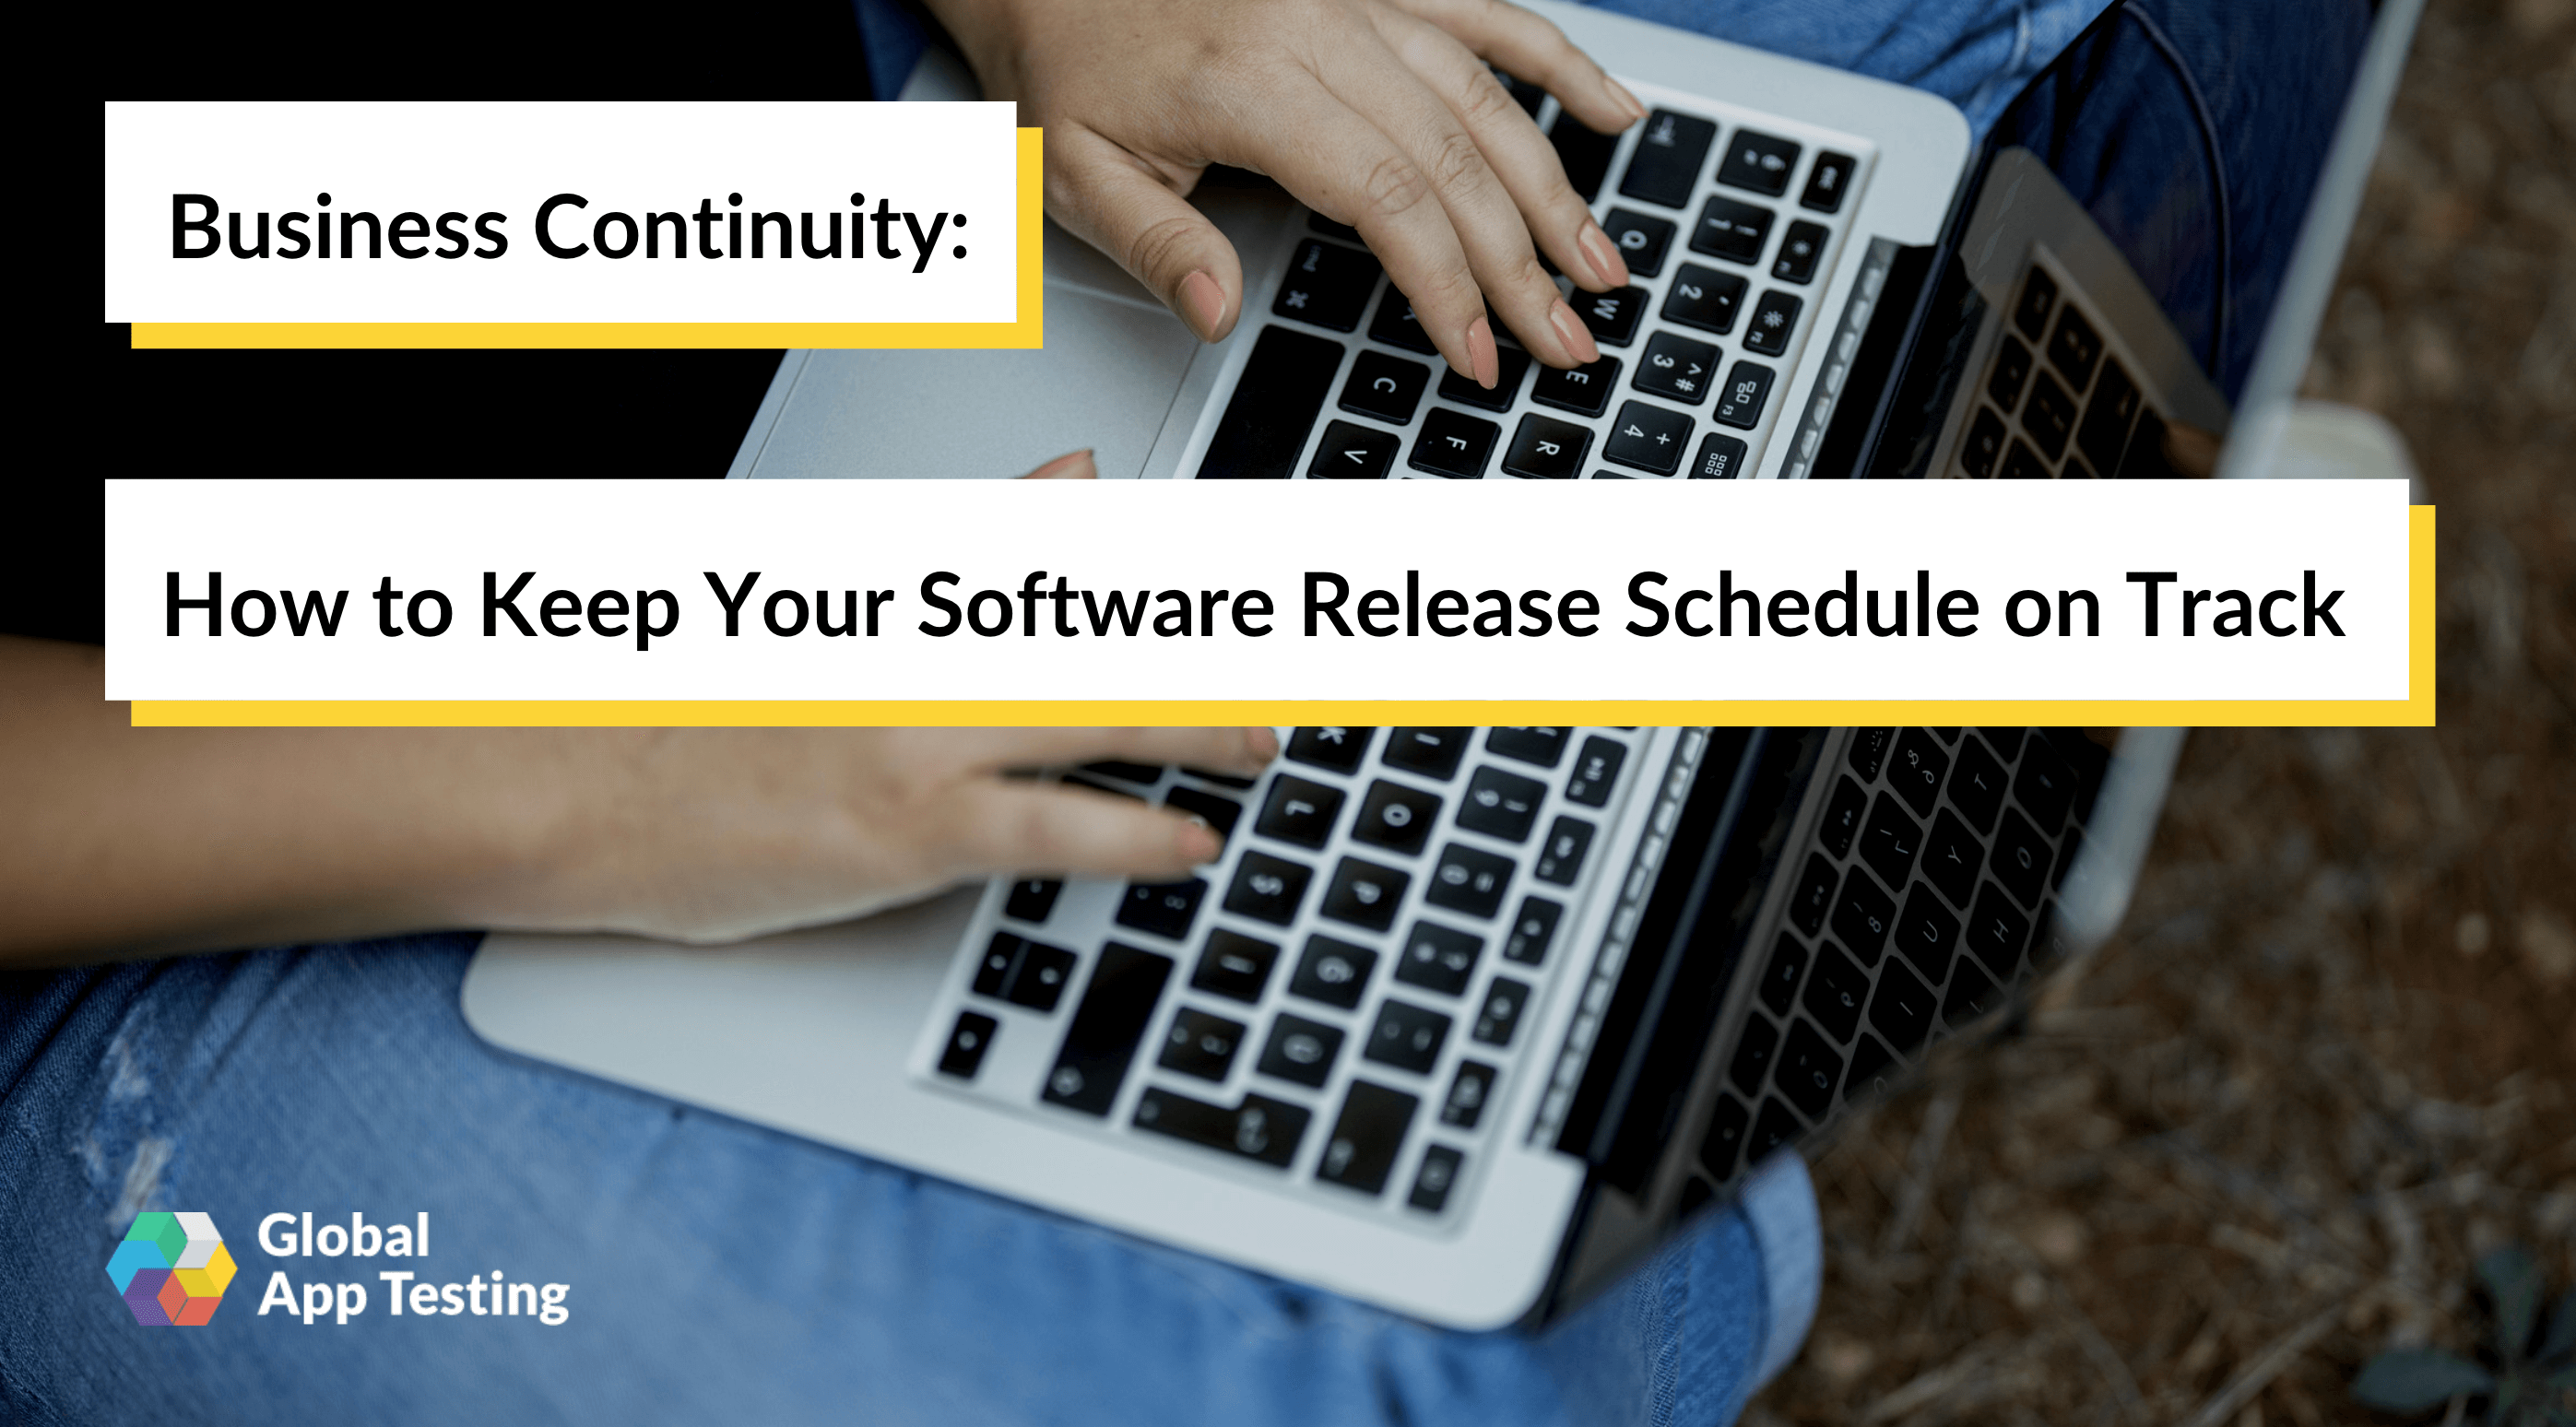 Business Continuity: How to Keep Your Software Release Schedule on Track